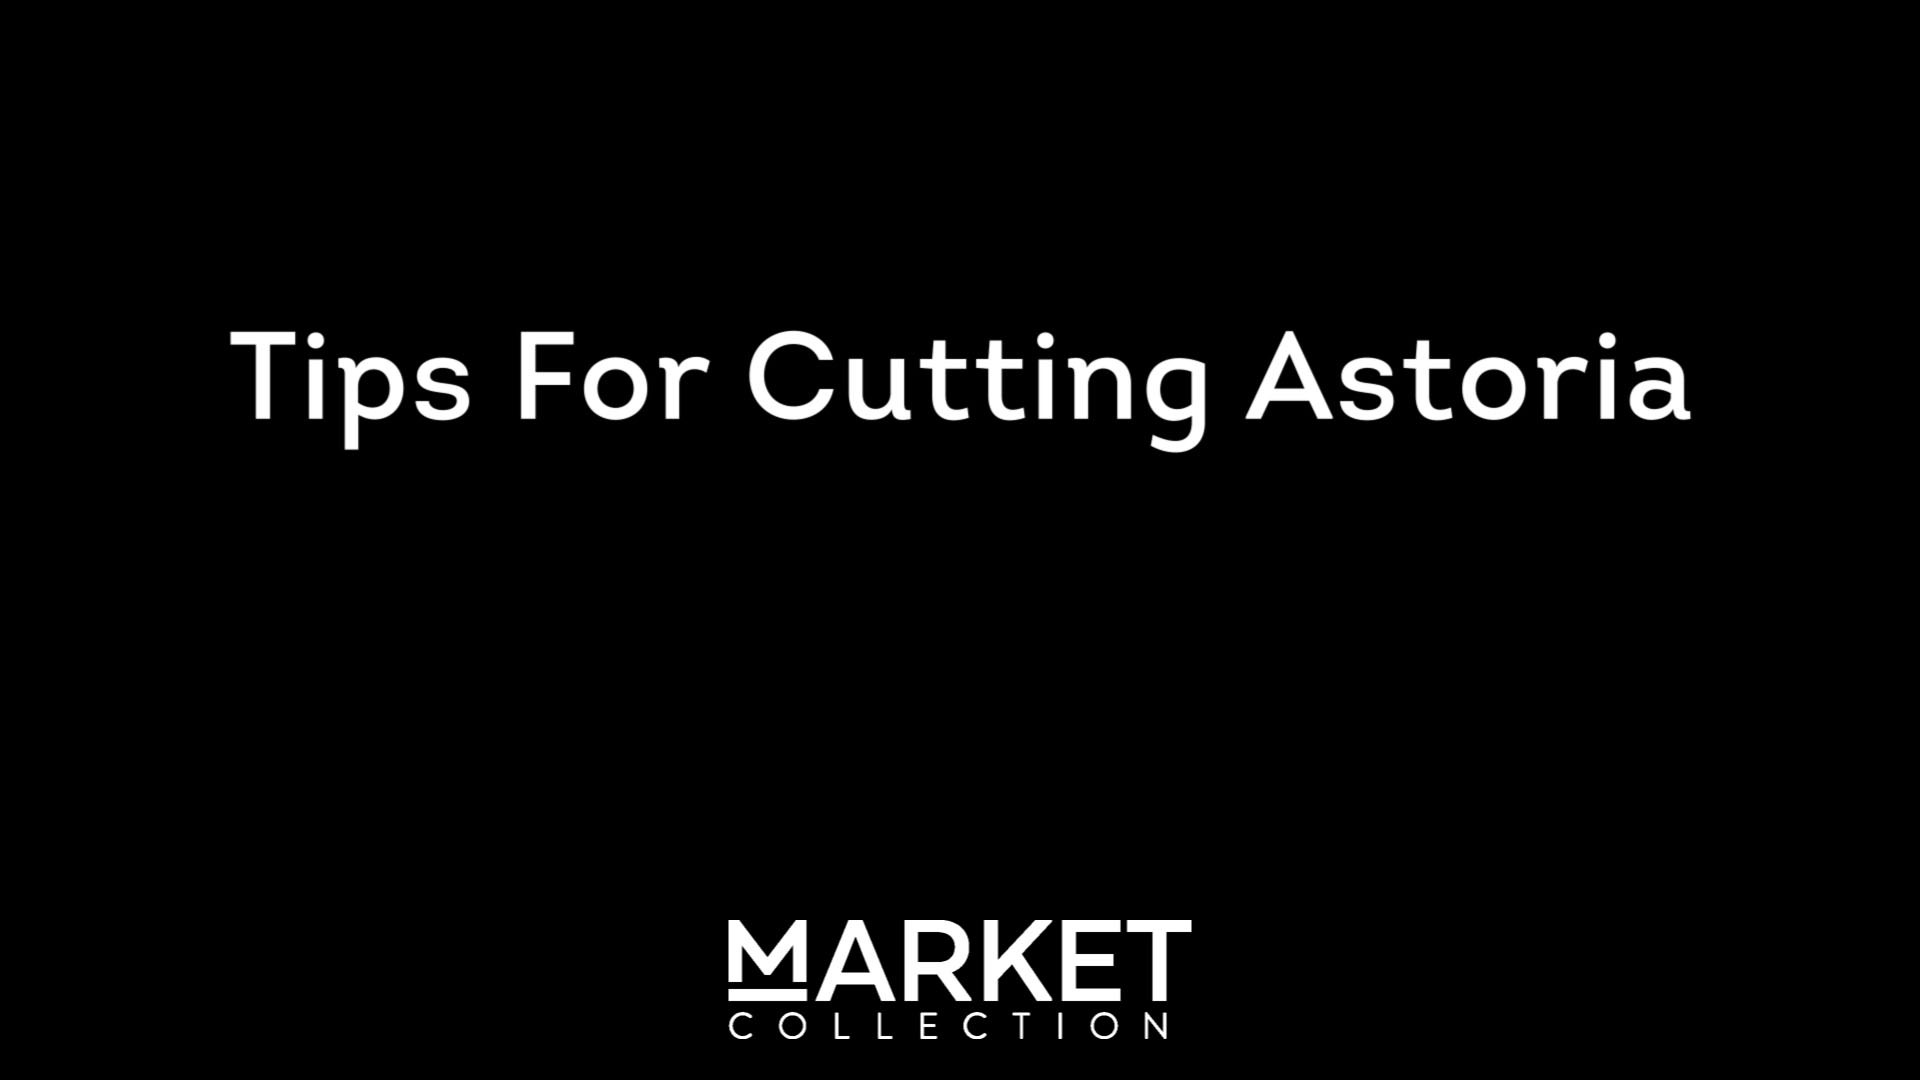 Instructions on how to cut ASTORIA tiles